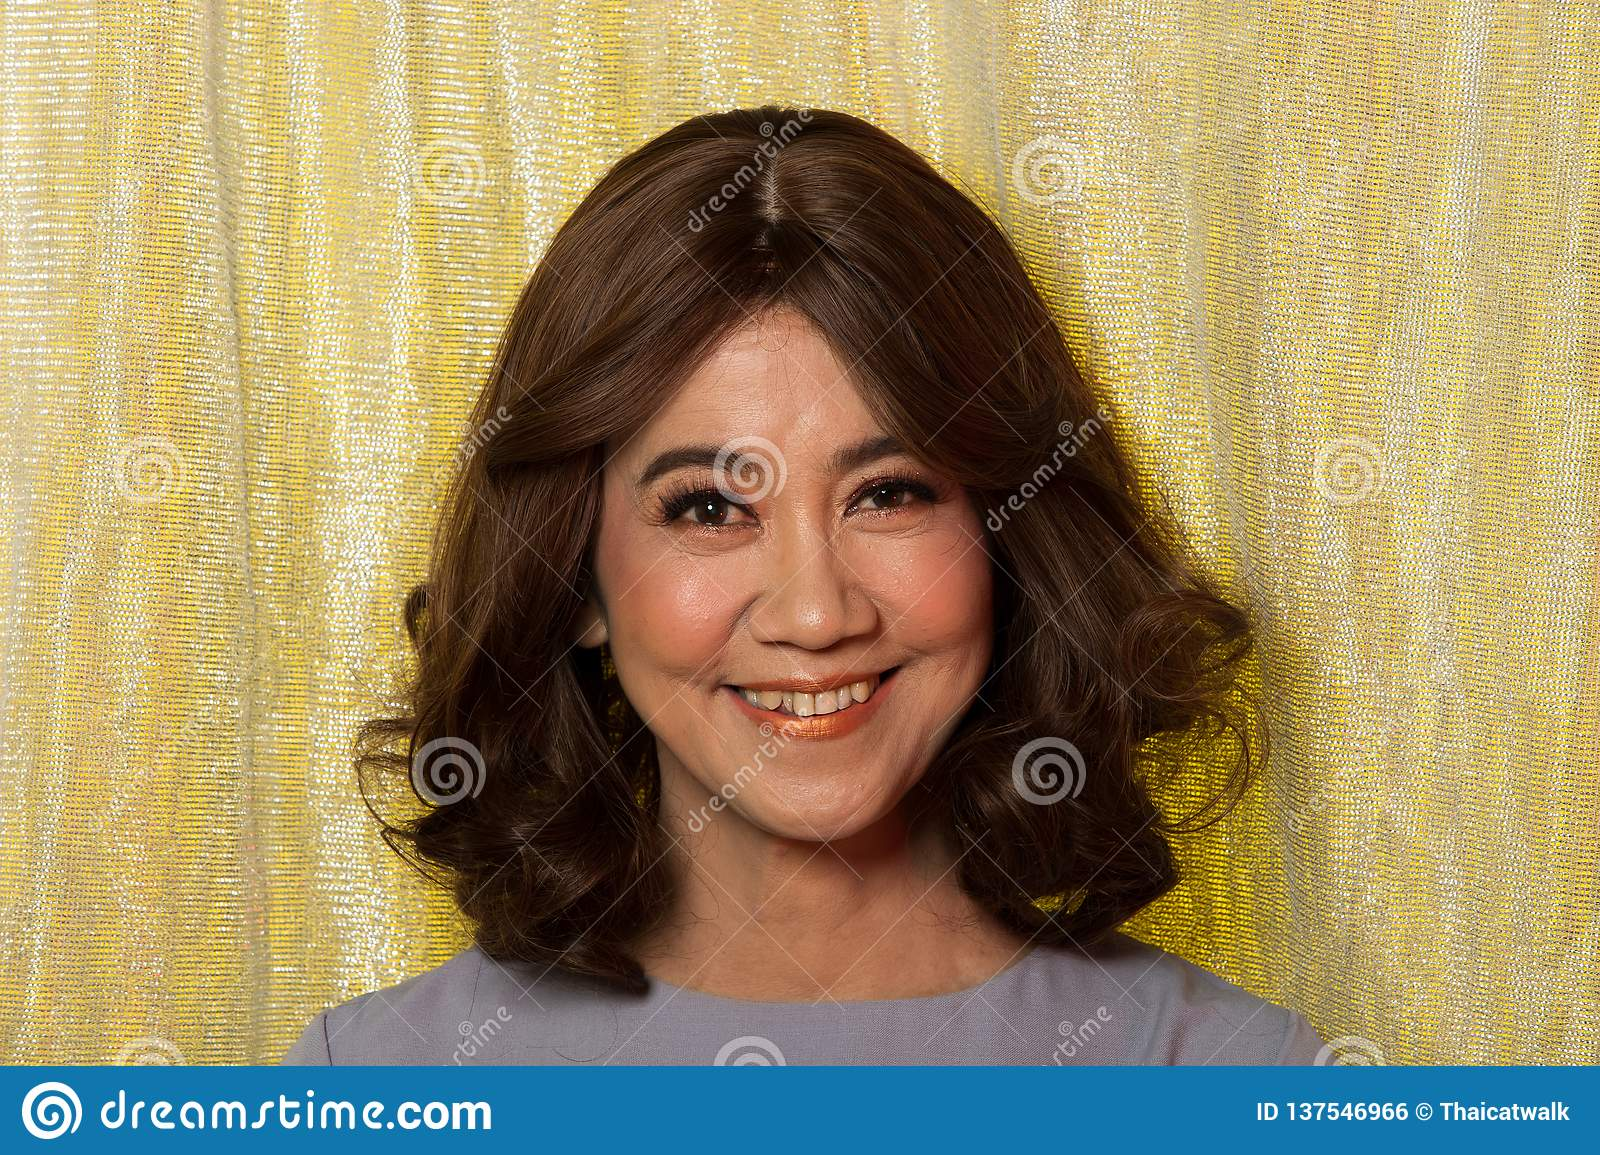 50s 60s years old Fashion Asian Woman Portrait